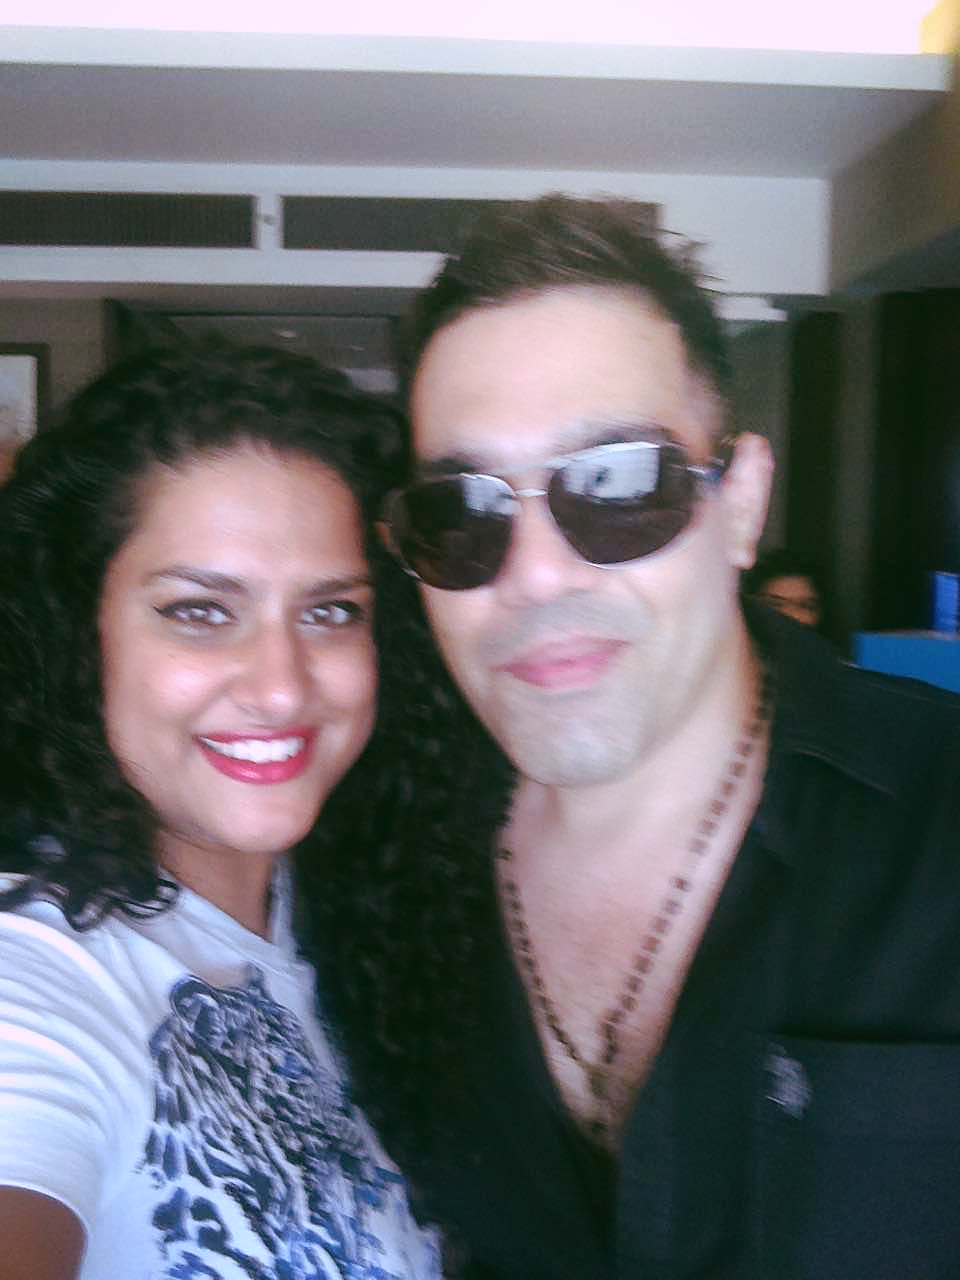 Selfie Time With Celebrity Hair Stylist Savio John Pereira After He Styled My Hair :-)